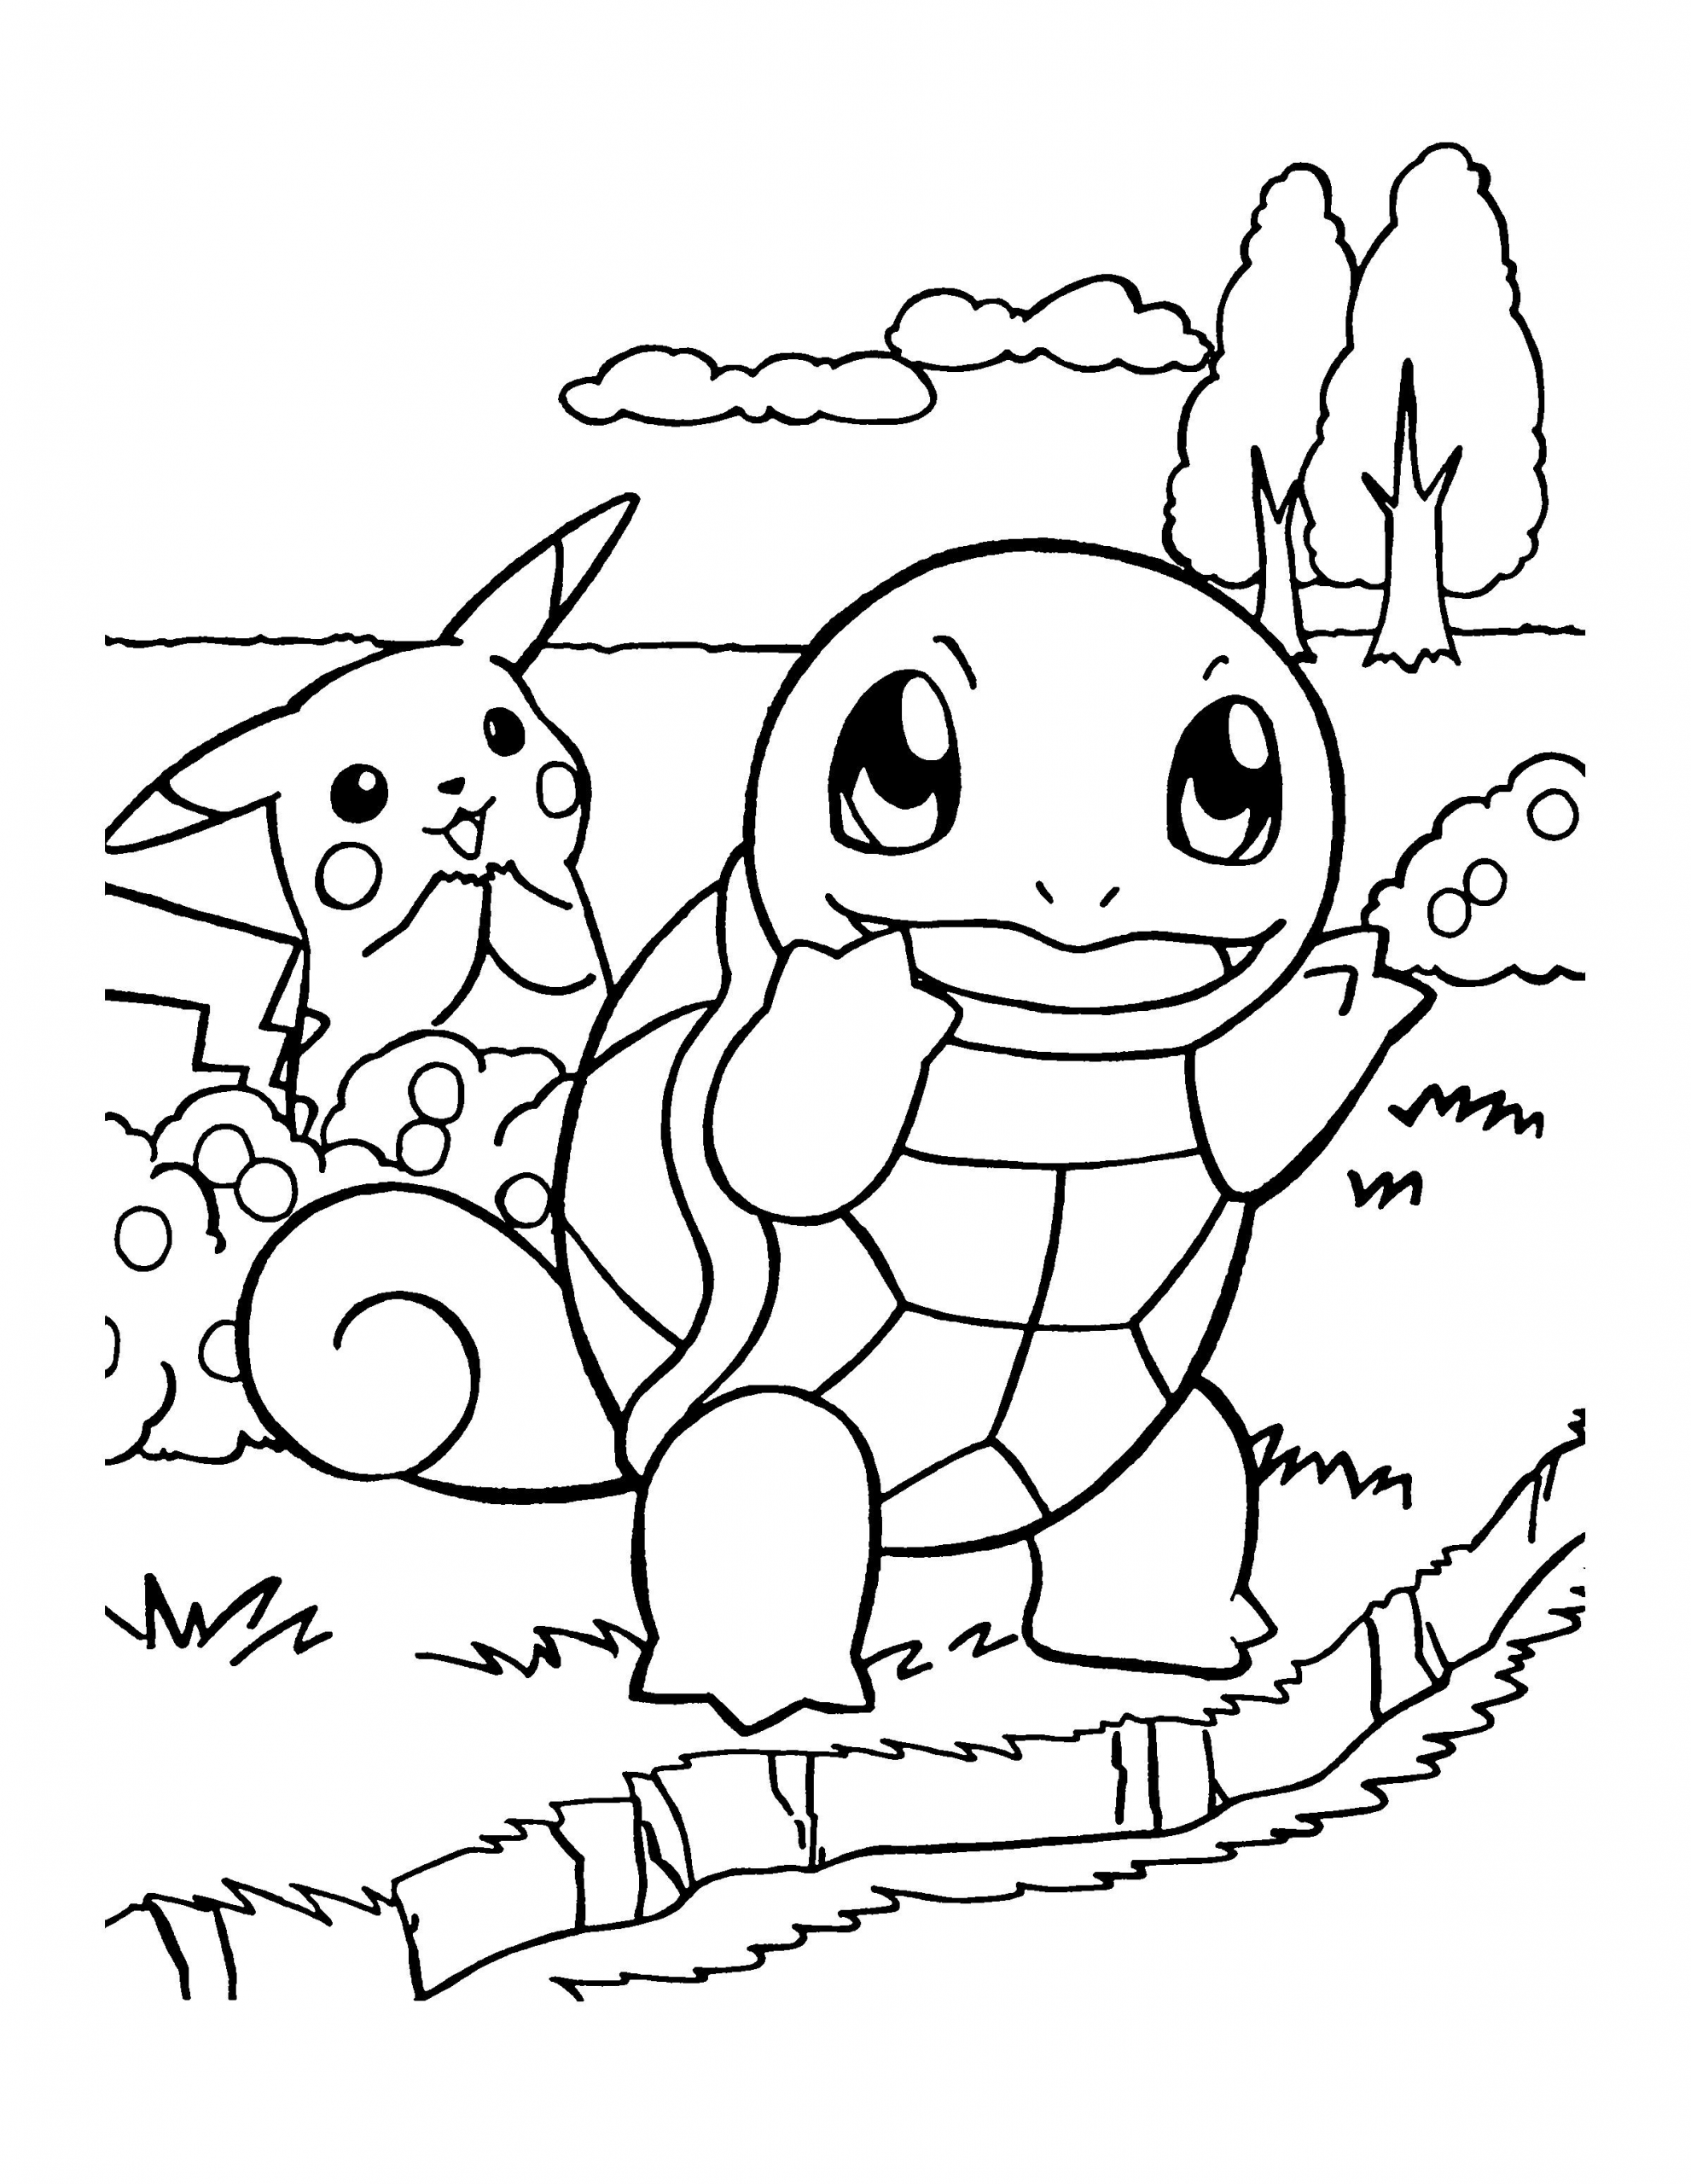 Squirtle Pokemon Coloring Page Youngandtae Com In 2020 Pikachu Coloring Page Pokemon Coloring Pages Cartoon Coloring Pages